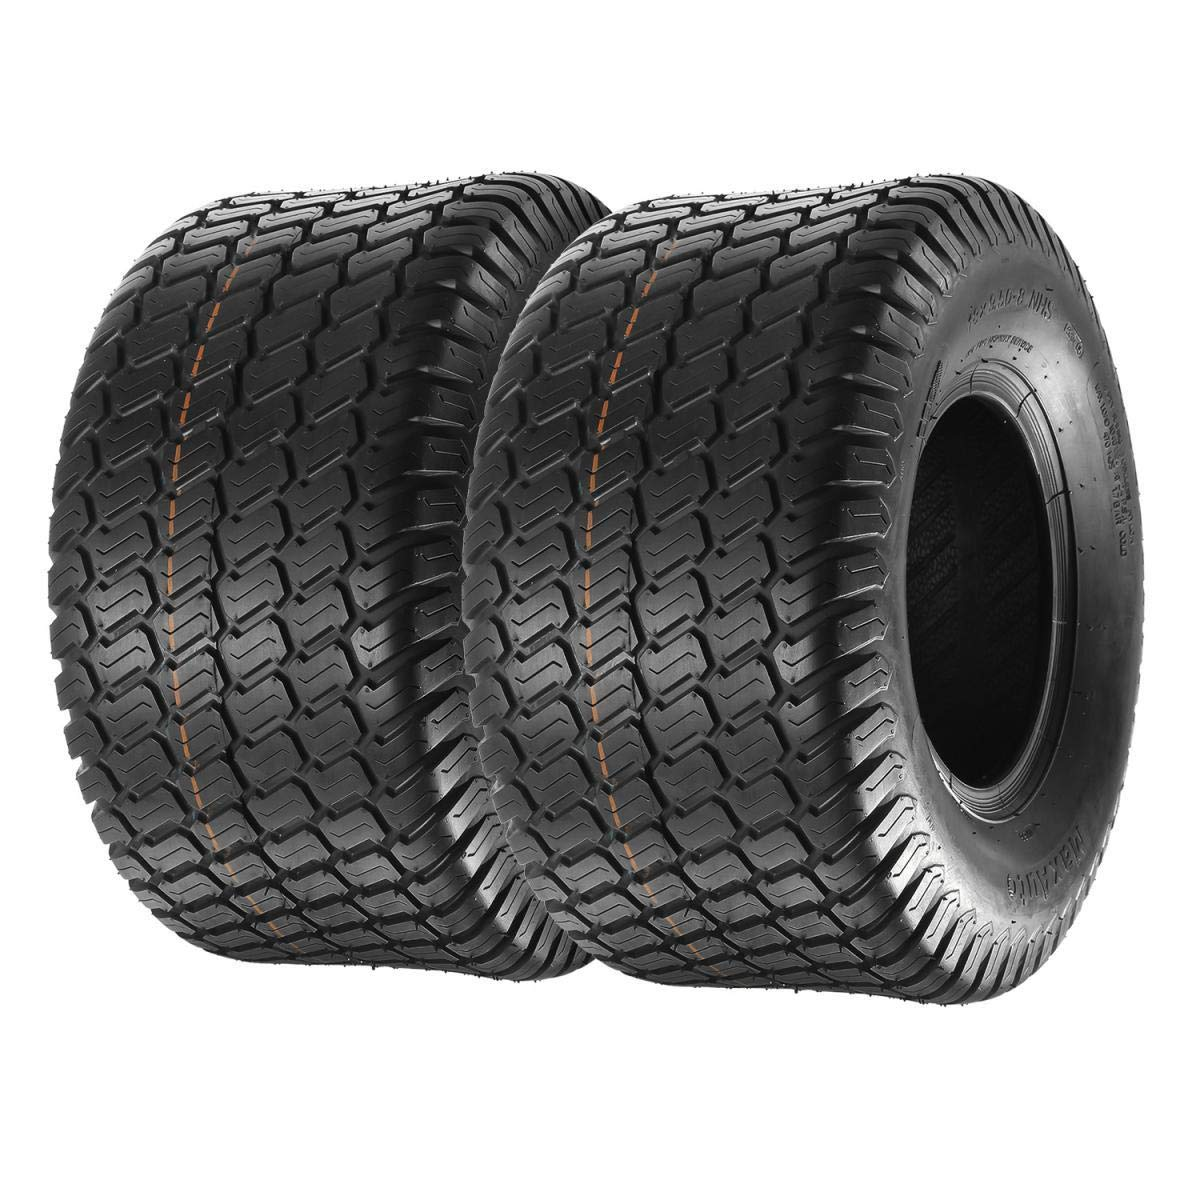 MaxAuto Set of 2 18x9.50-8 18/9.50-8 Lawn & Garden Mower Tractor Turf Tires 4PR by MaxAuto